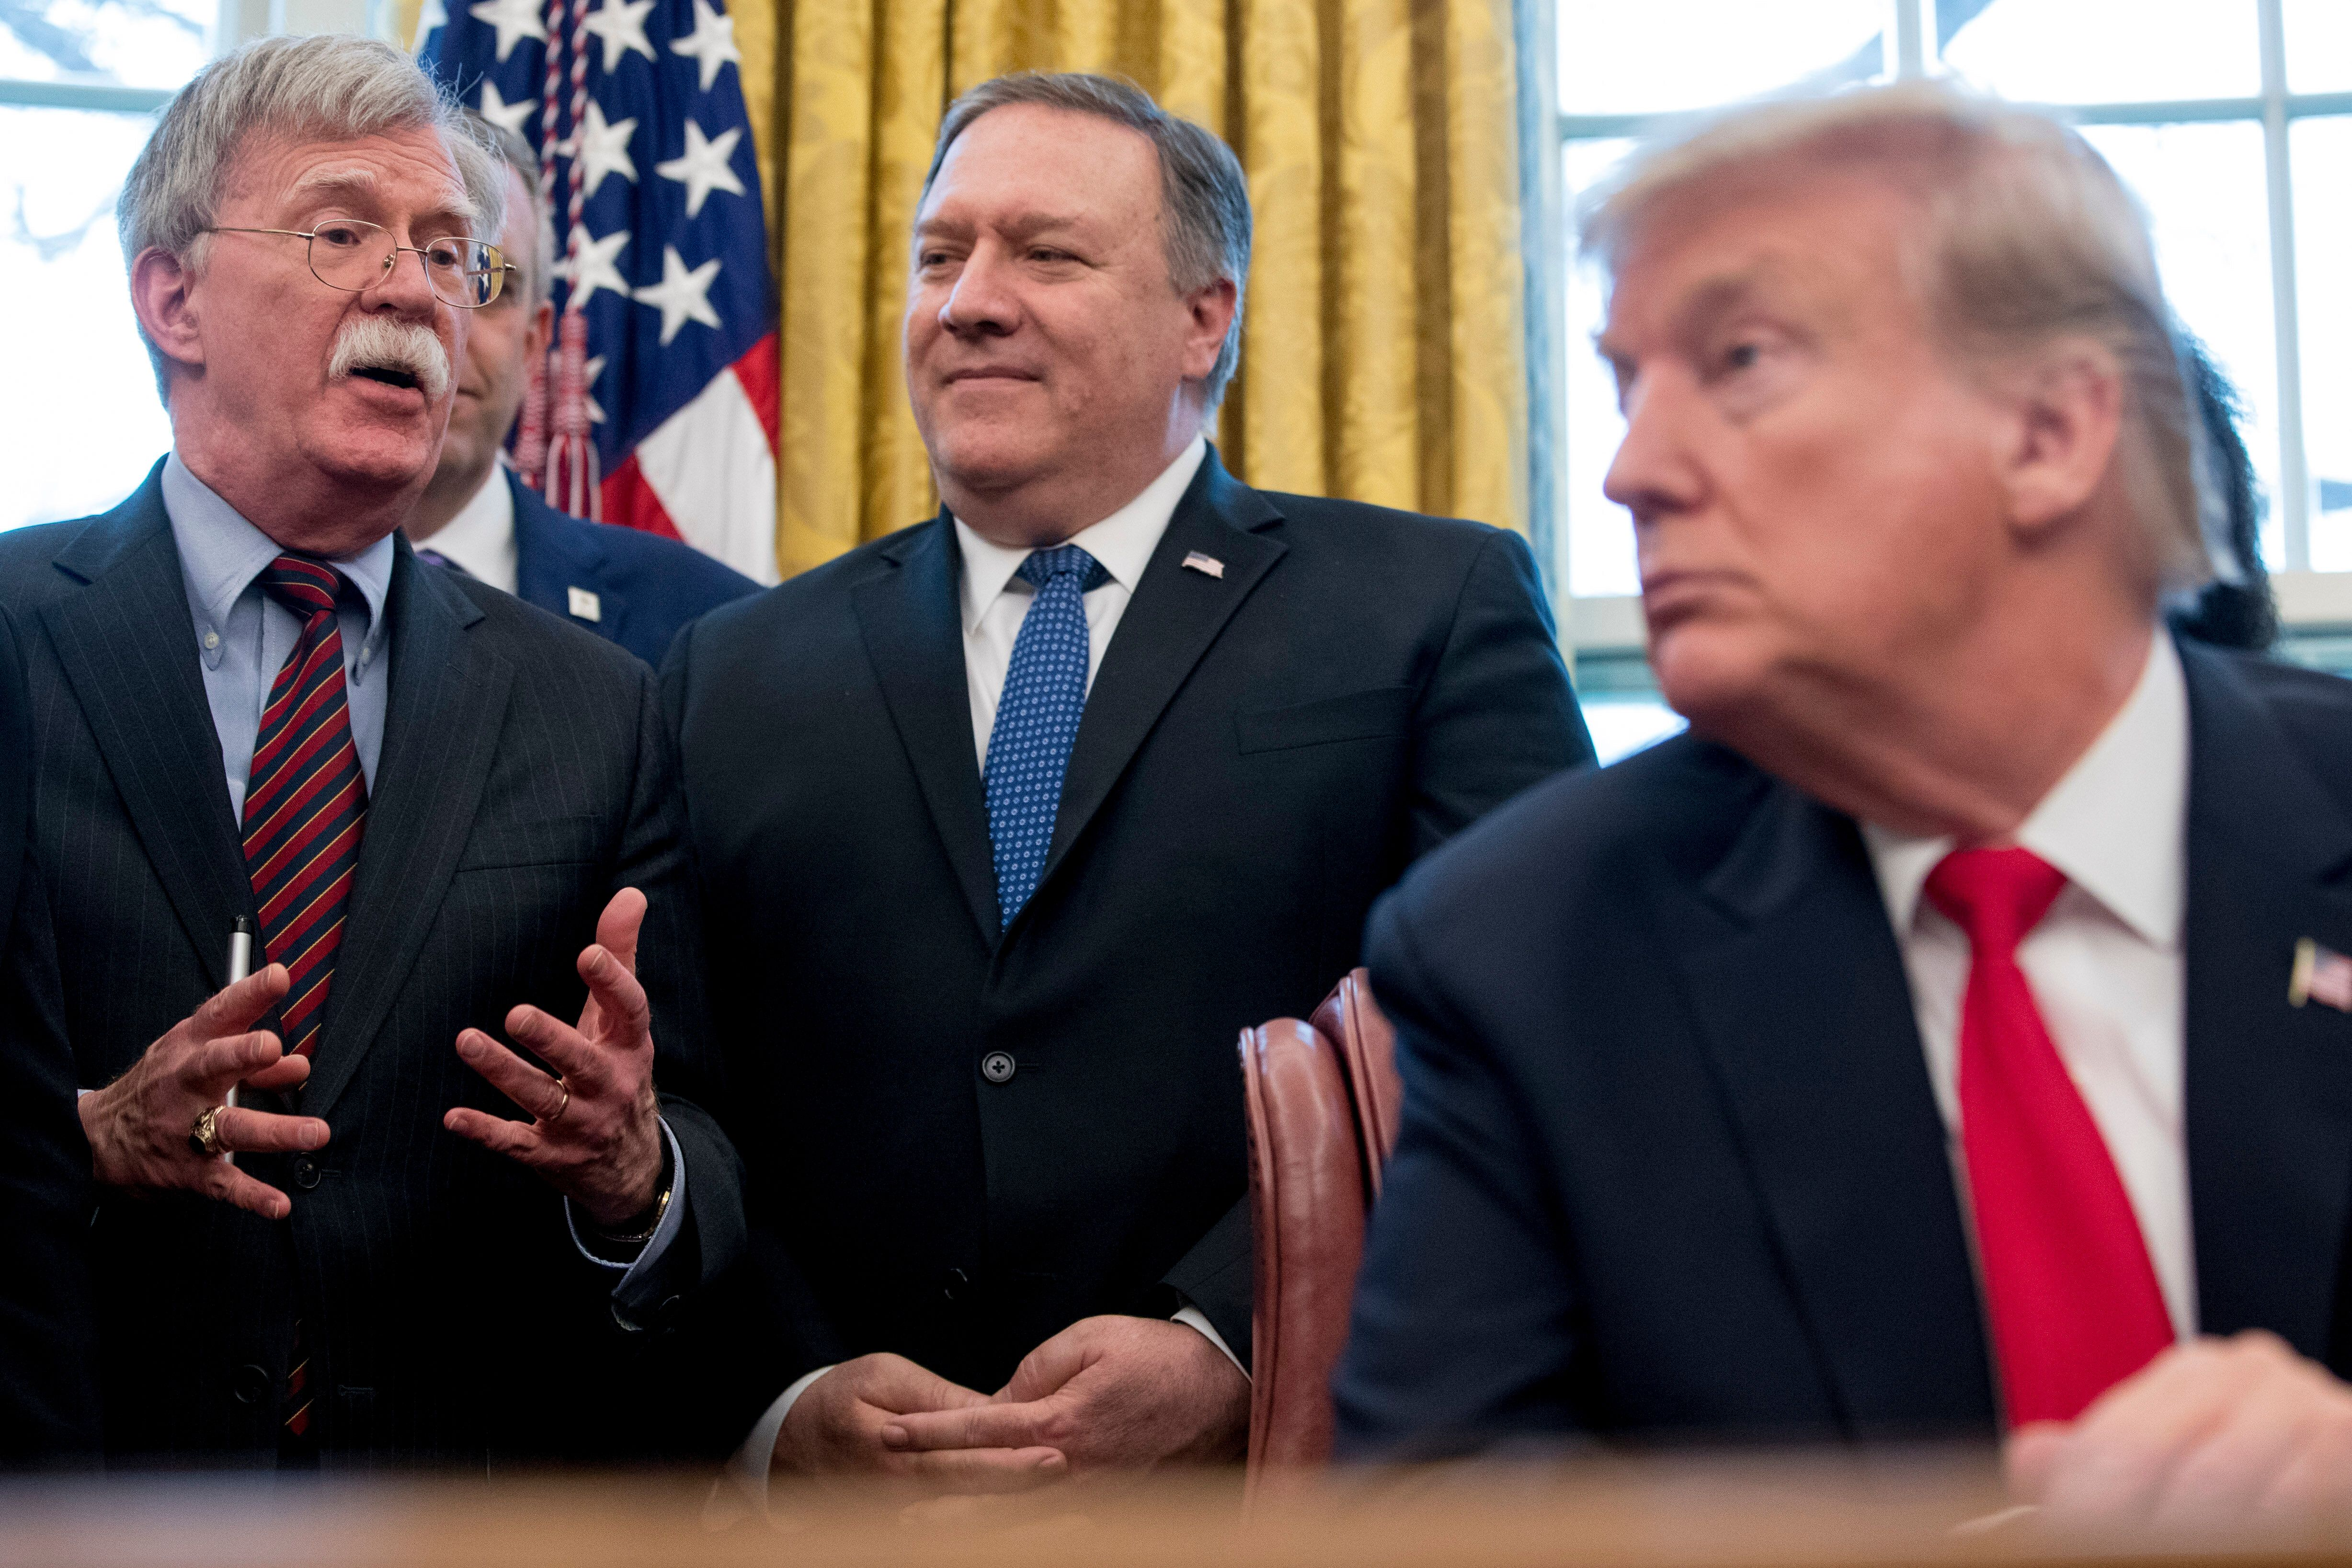 National security adviser John Bolton, Secretary of State Mike Pompeo and President Donald Trump.